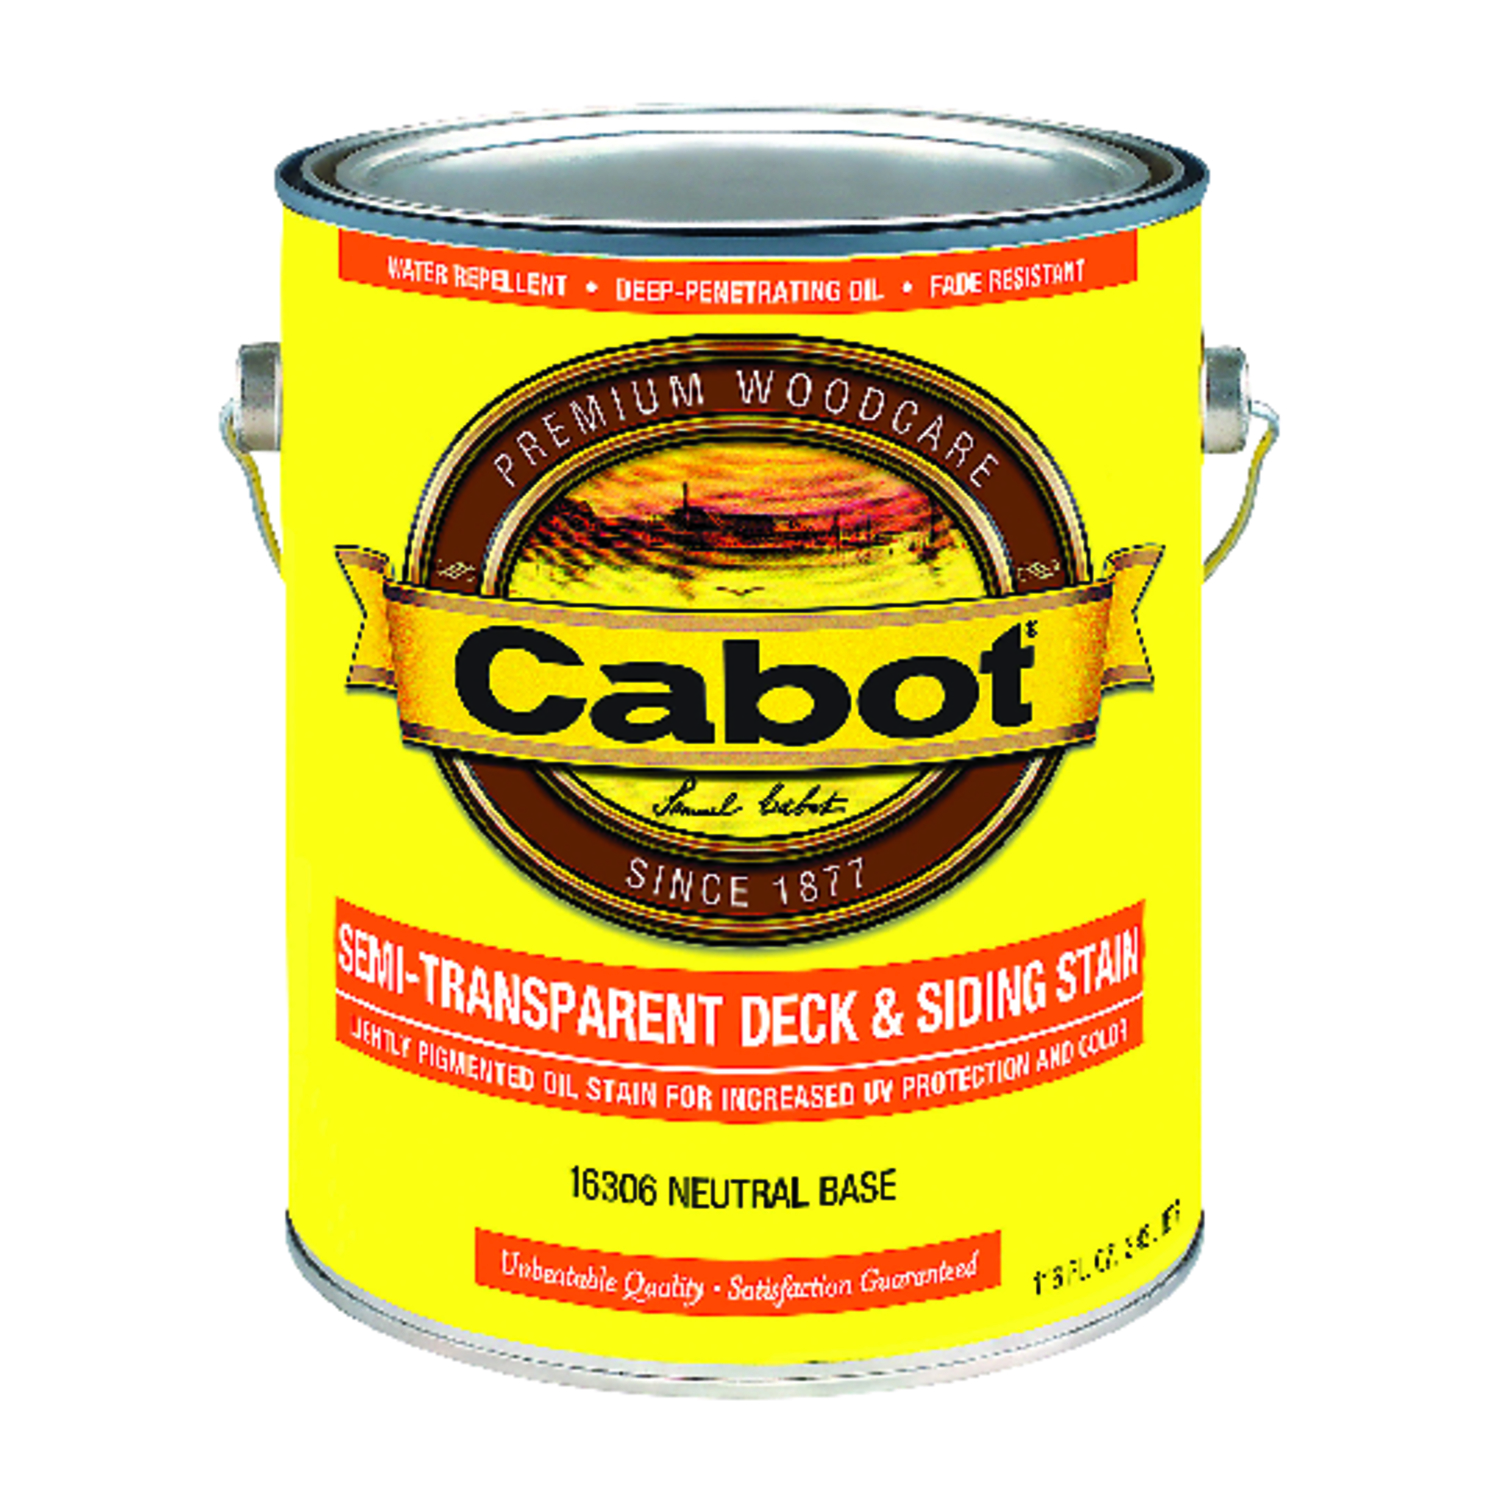 Cabot  Semi-Transparent Deck & Siding Stain  Semi-Transparent  Tintable Neutral Base  Oil-Based  Dec